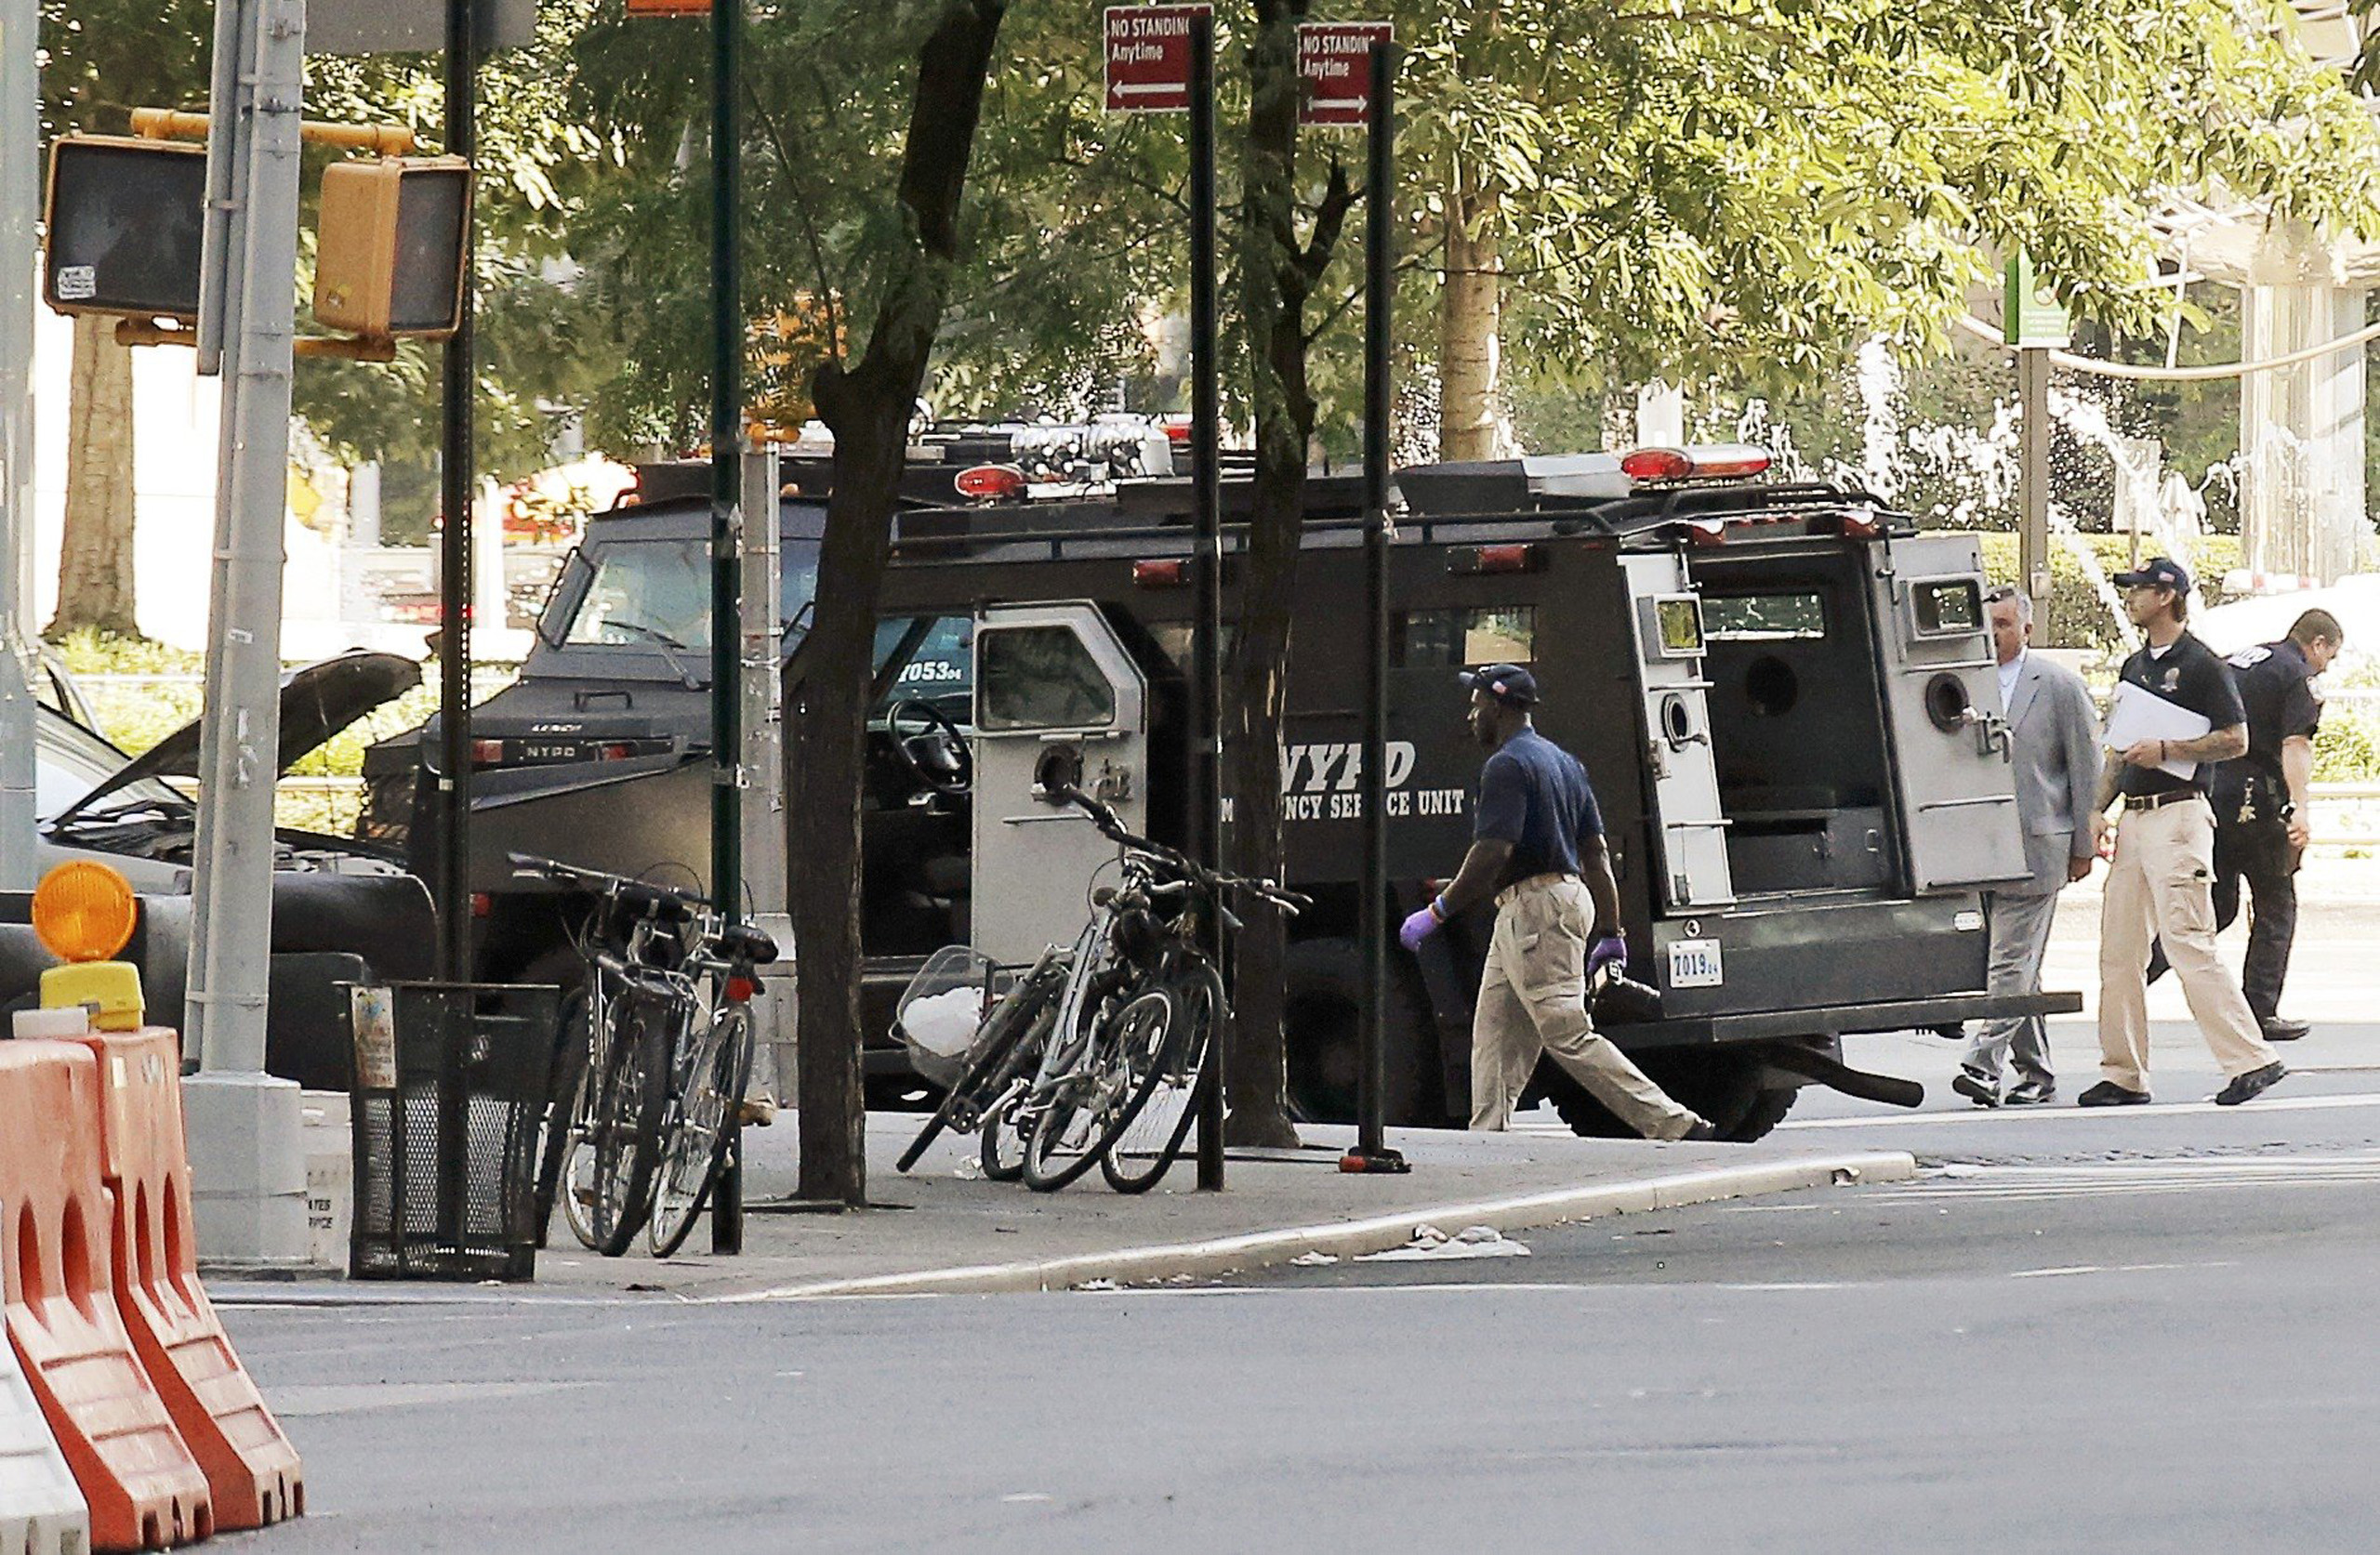 Police investigate the scene near an SUV in which a man suspected of causing a bomb scare barricaded himself, causing an hours-long standoff and the shutdown of a mid-Manhattan area in New York City on July 21, 2016.